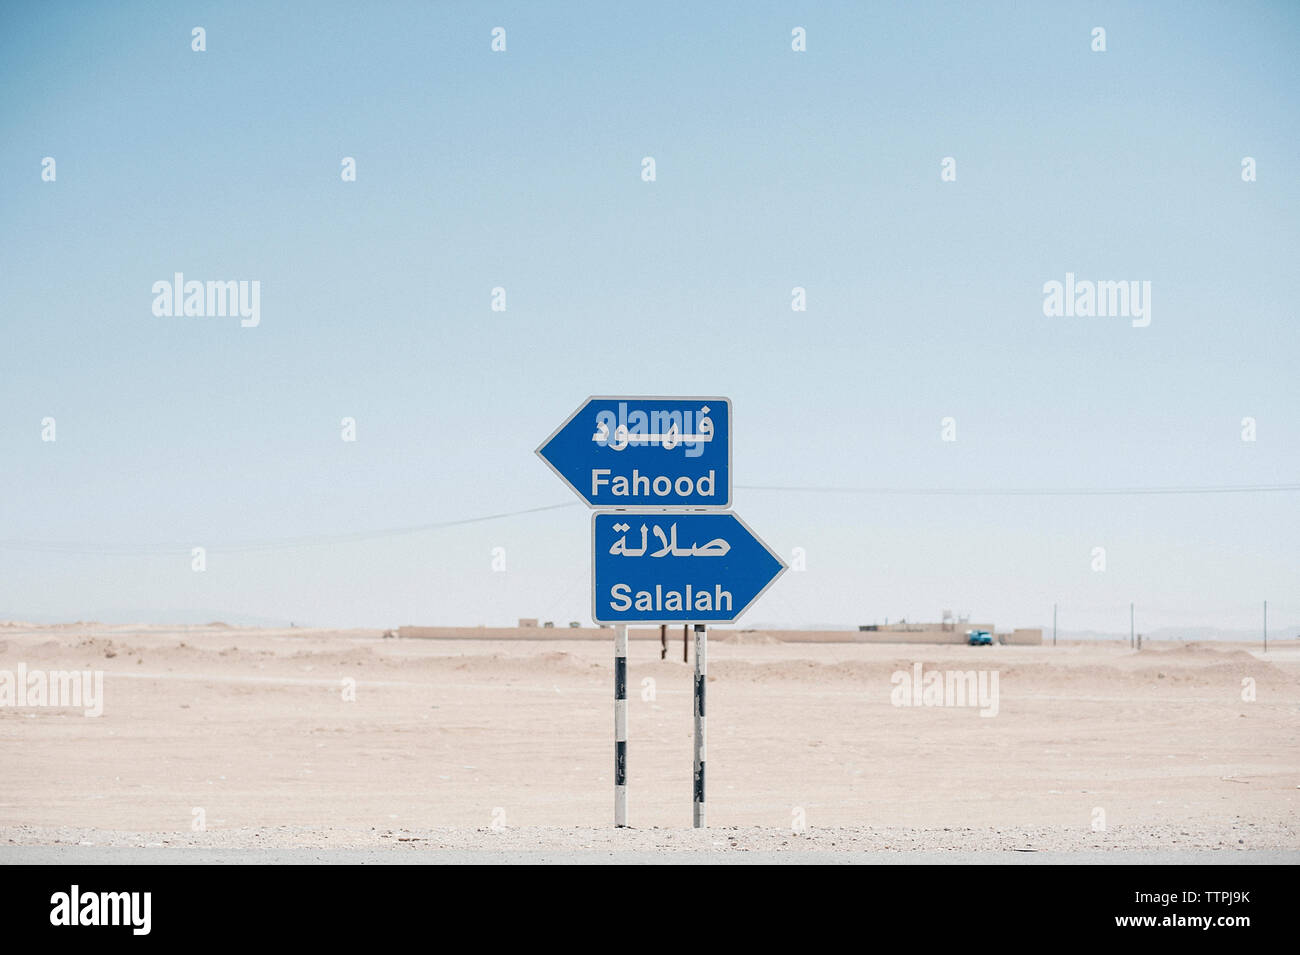 Signboards on desert against clear sky - Stock Image